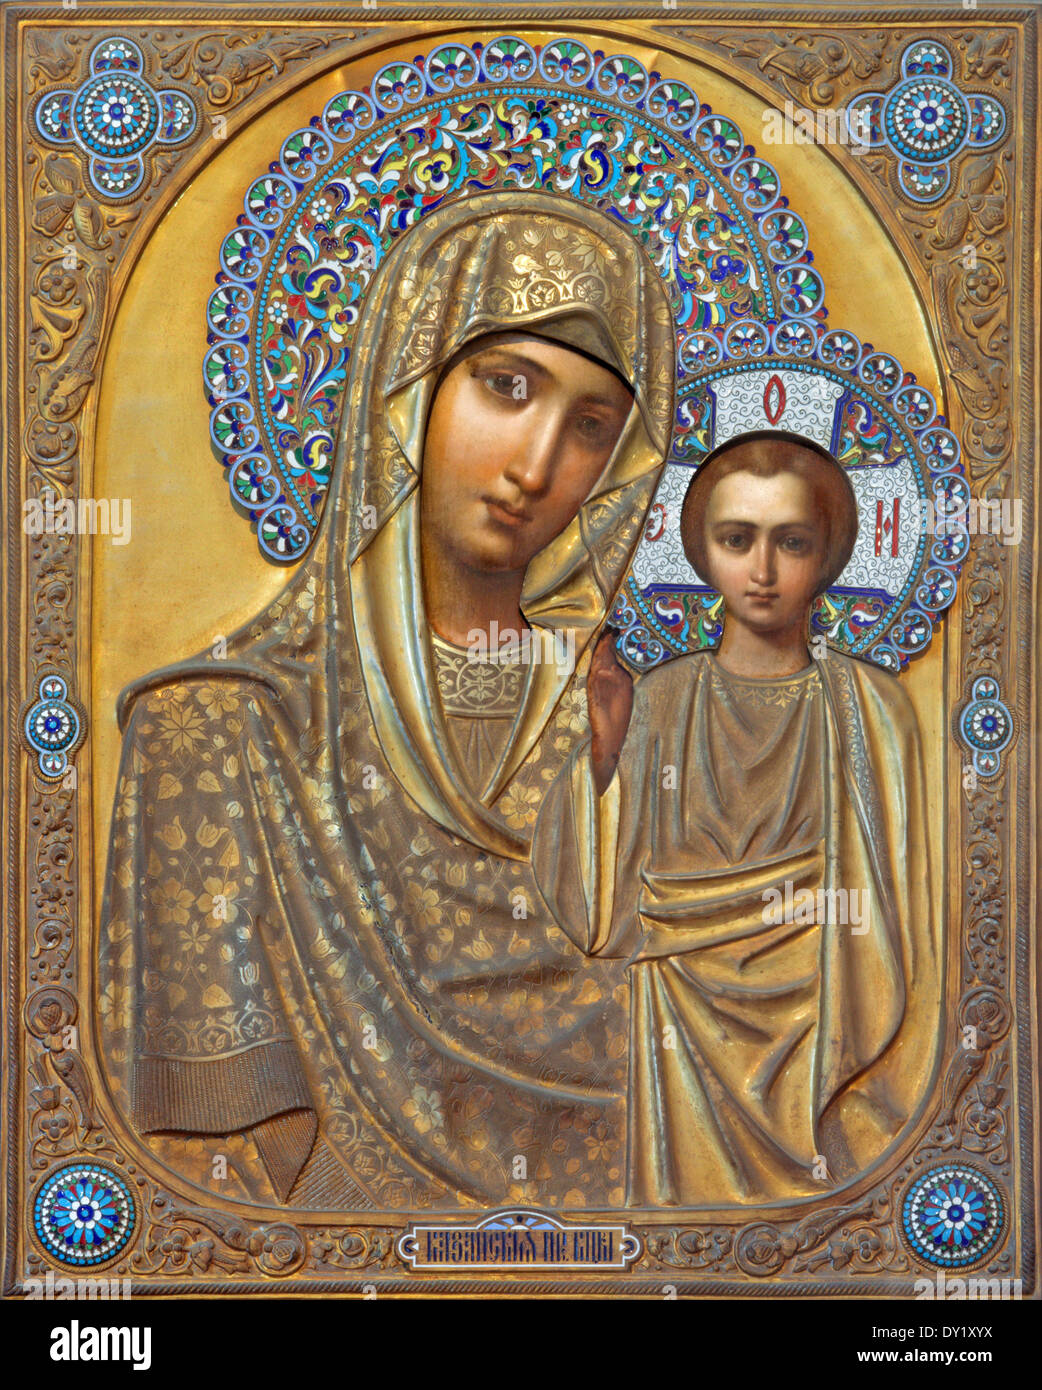 Venice - Icon of Madonna with the child from Russian town Kazan in church of San Martino of Saint Martin on Burano Stock Photo